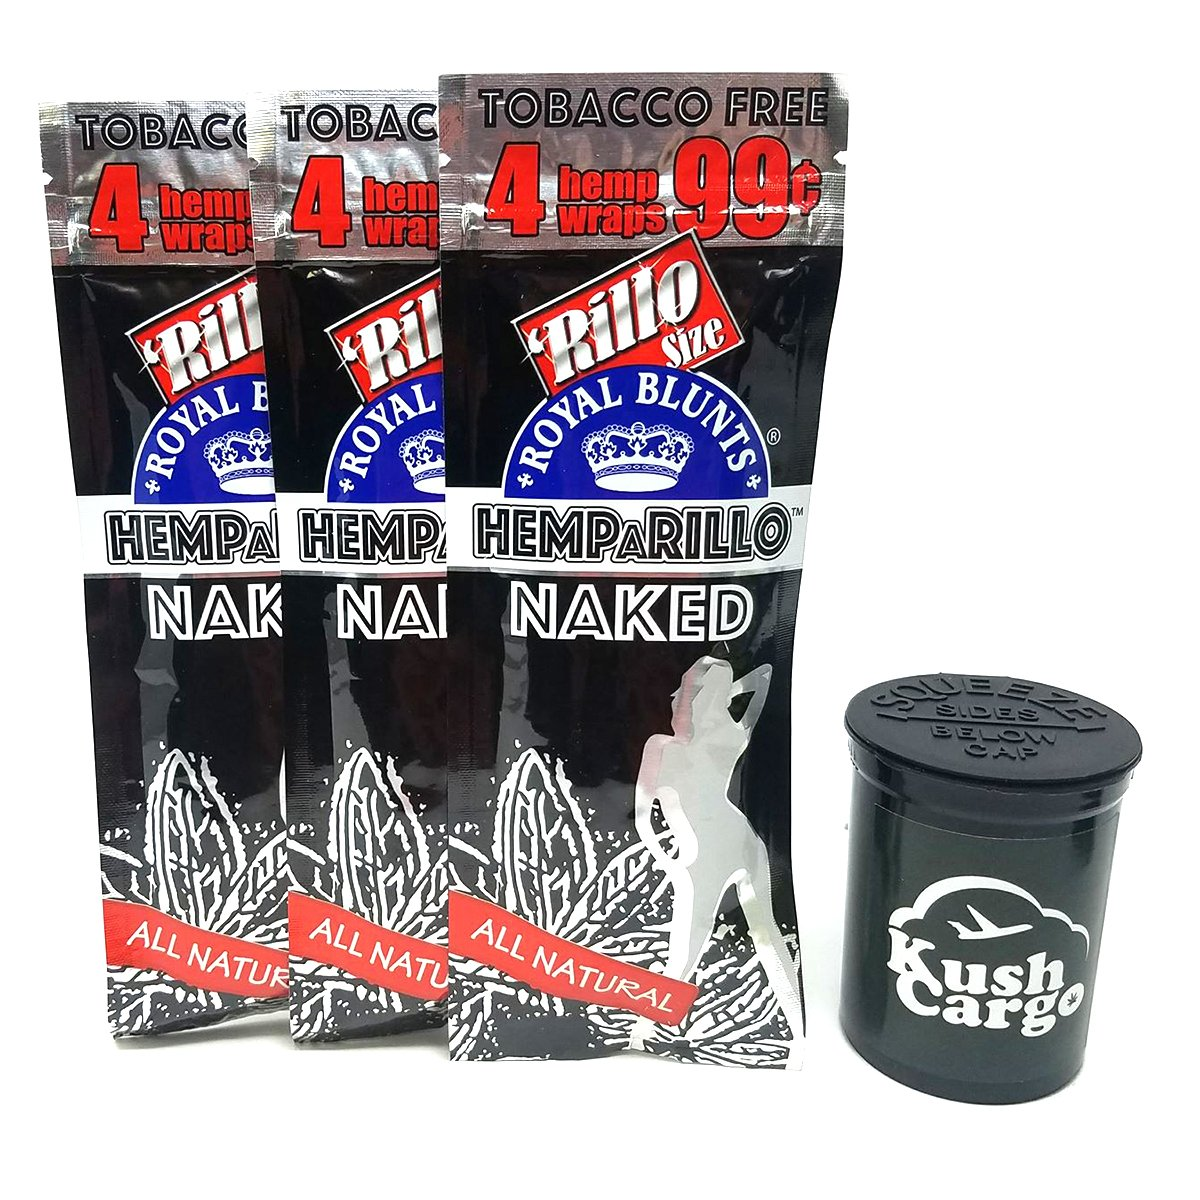 HEMPaRILLO Naked Unflavored Hemp Wraps with KC Pop Top (6 Packs)